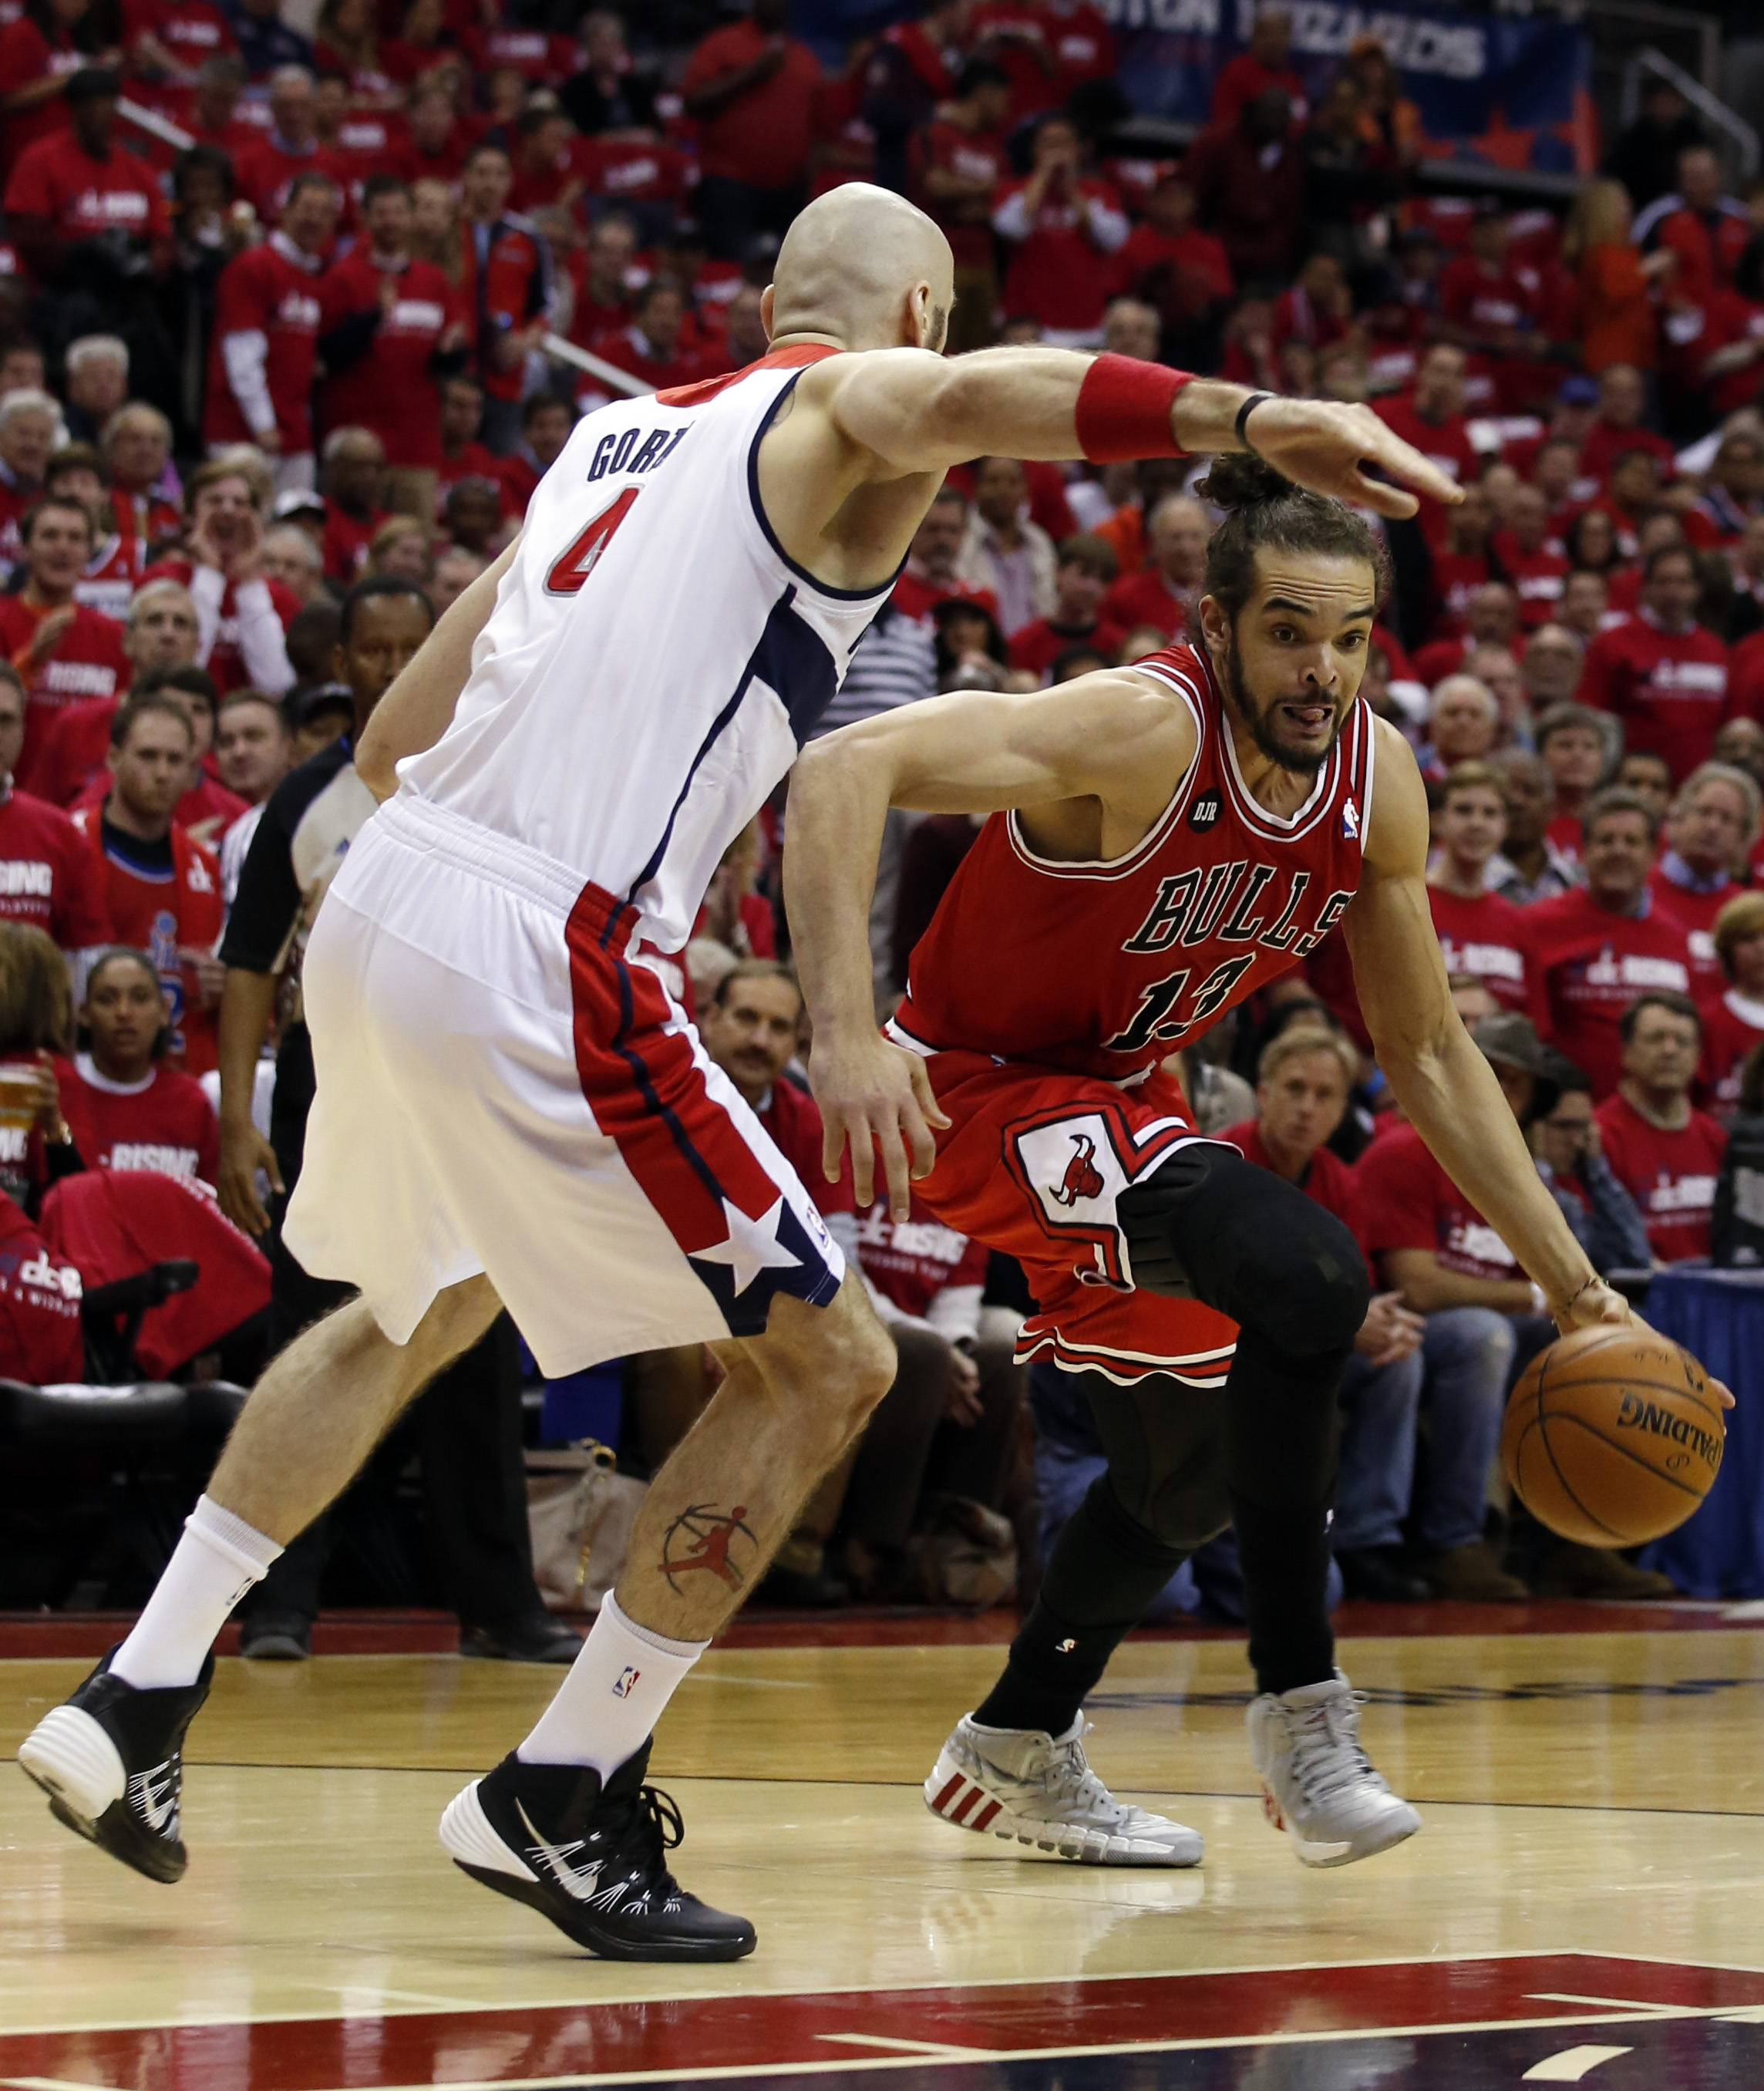 Chicago Bulls center Joakim Noah (13) drives past Washington Wizards center Marcin Gortat (4), from Poland, in the first half of Game 3 of an opening-round NBA basketball playoff series on Friday, April 25, 2014, in Washington.